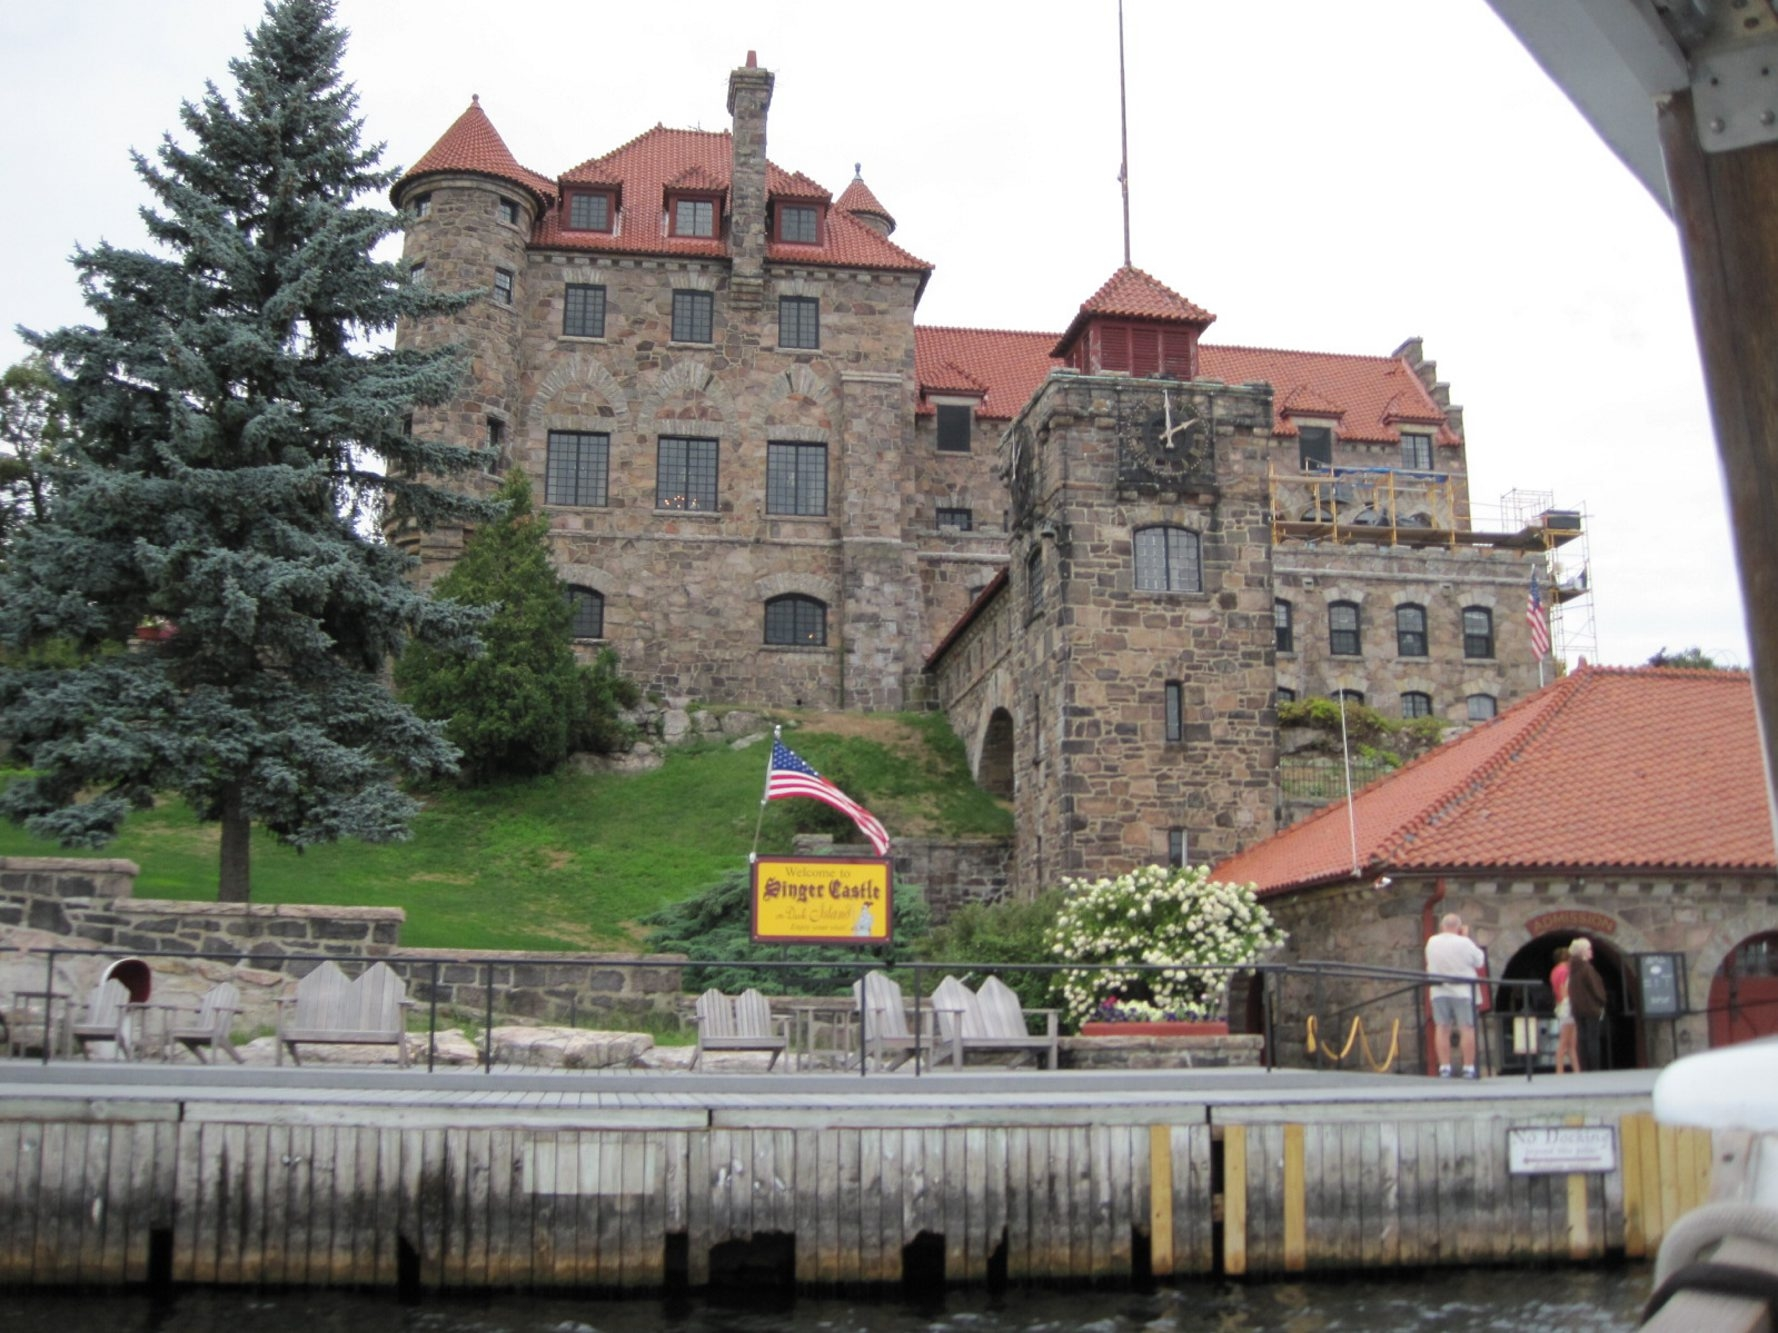 Singer Castle, on Dark Island in the St. Lawrence River, was built at the turn of the 20th century by Frederick Gilbert Bourne, president of the Singer Manufacturing Co. Today, the 28-room castle is open for tours.